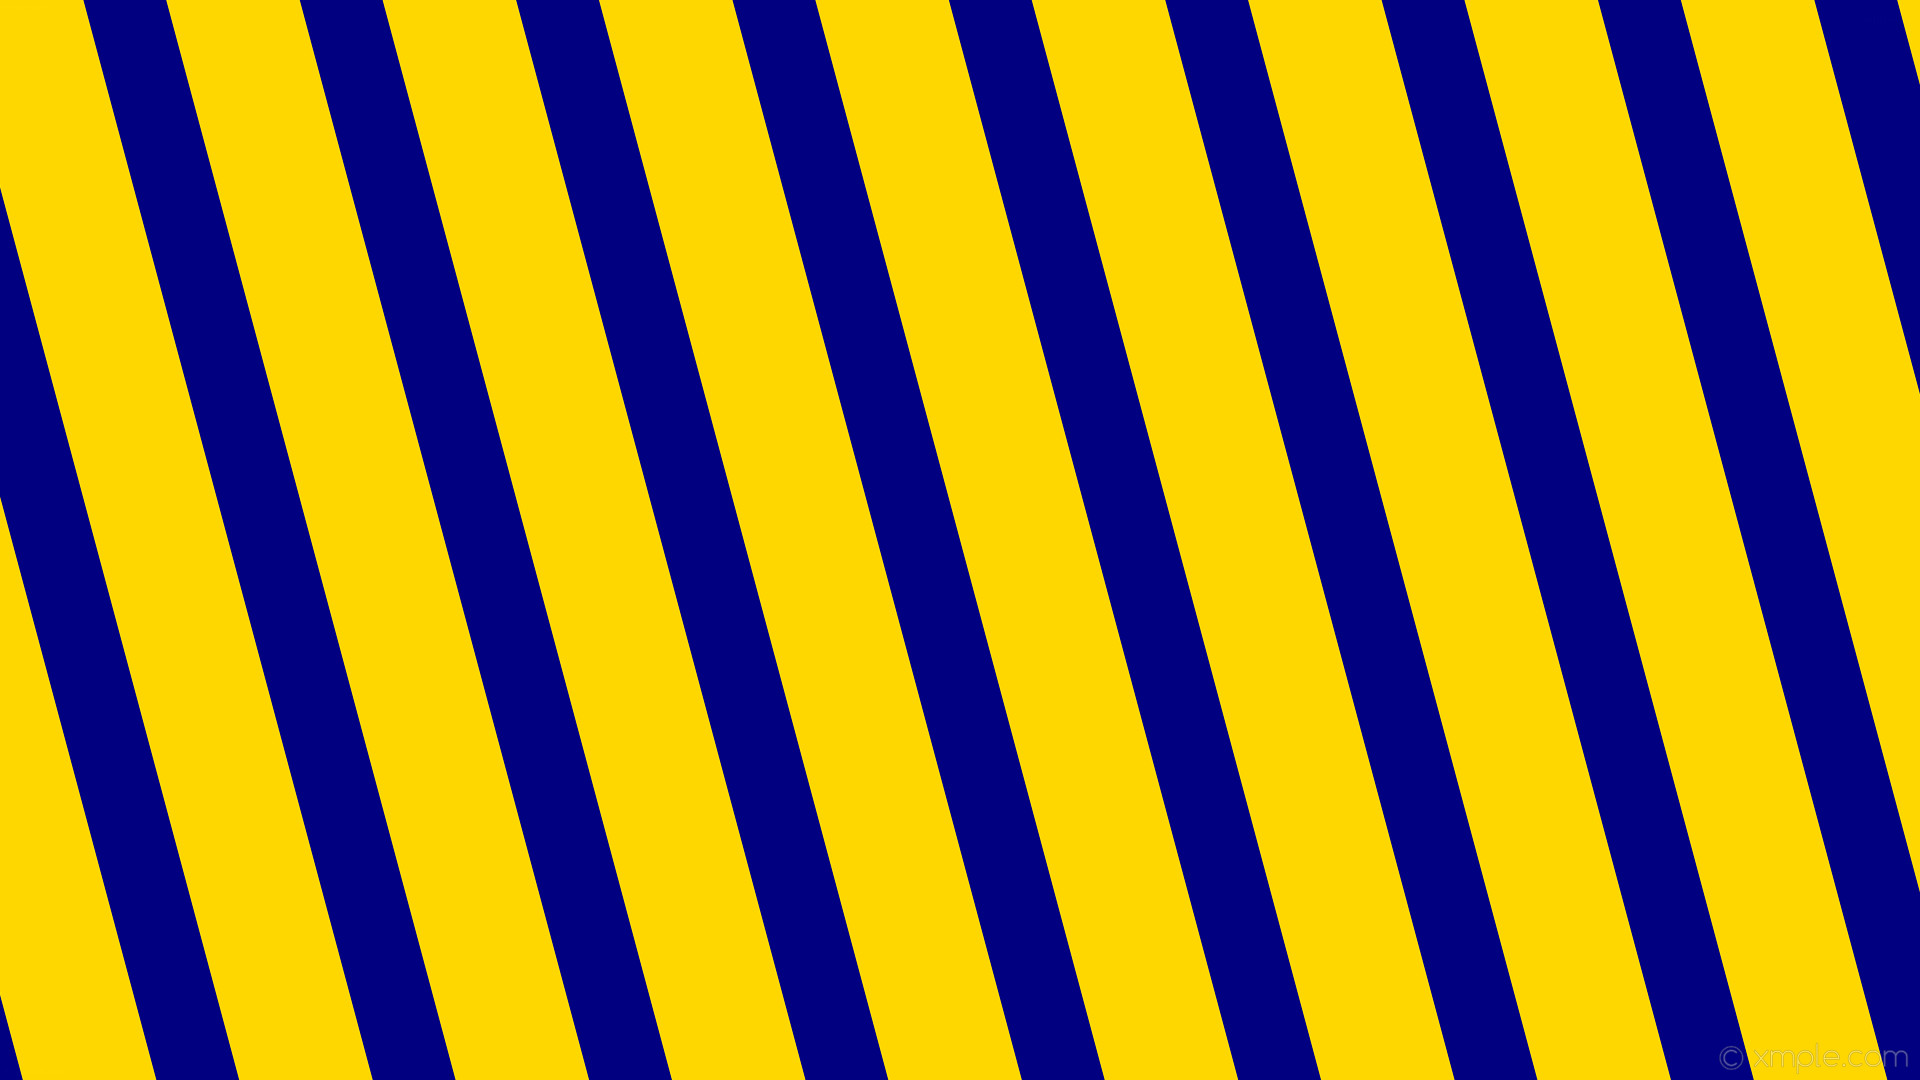 wallpaper yellow streaks blue lines stripes navy gold #000080 #ffd700  diagonal 285° 80px